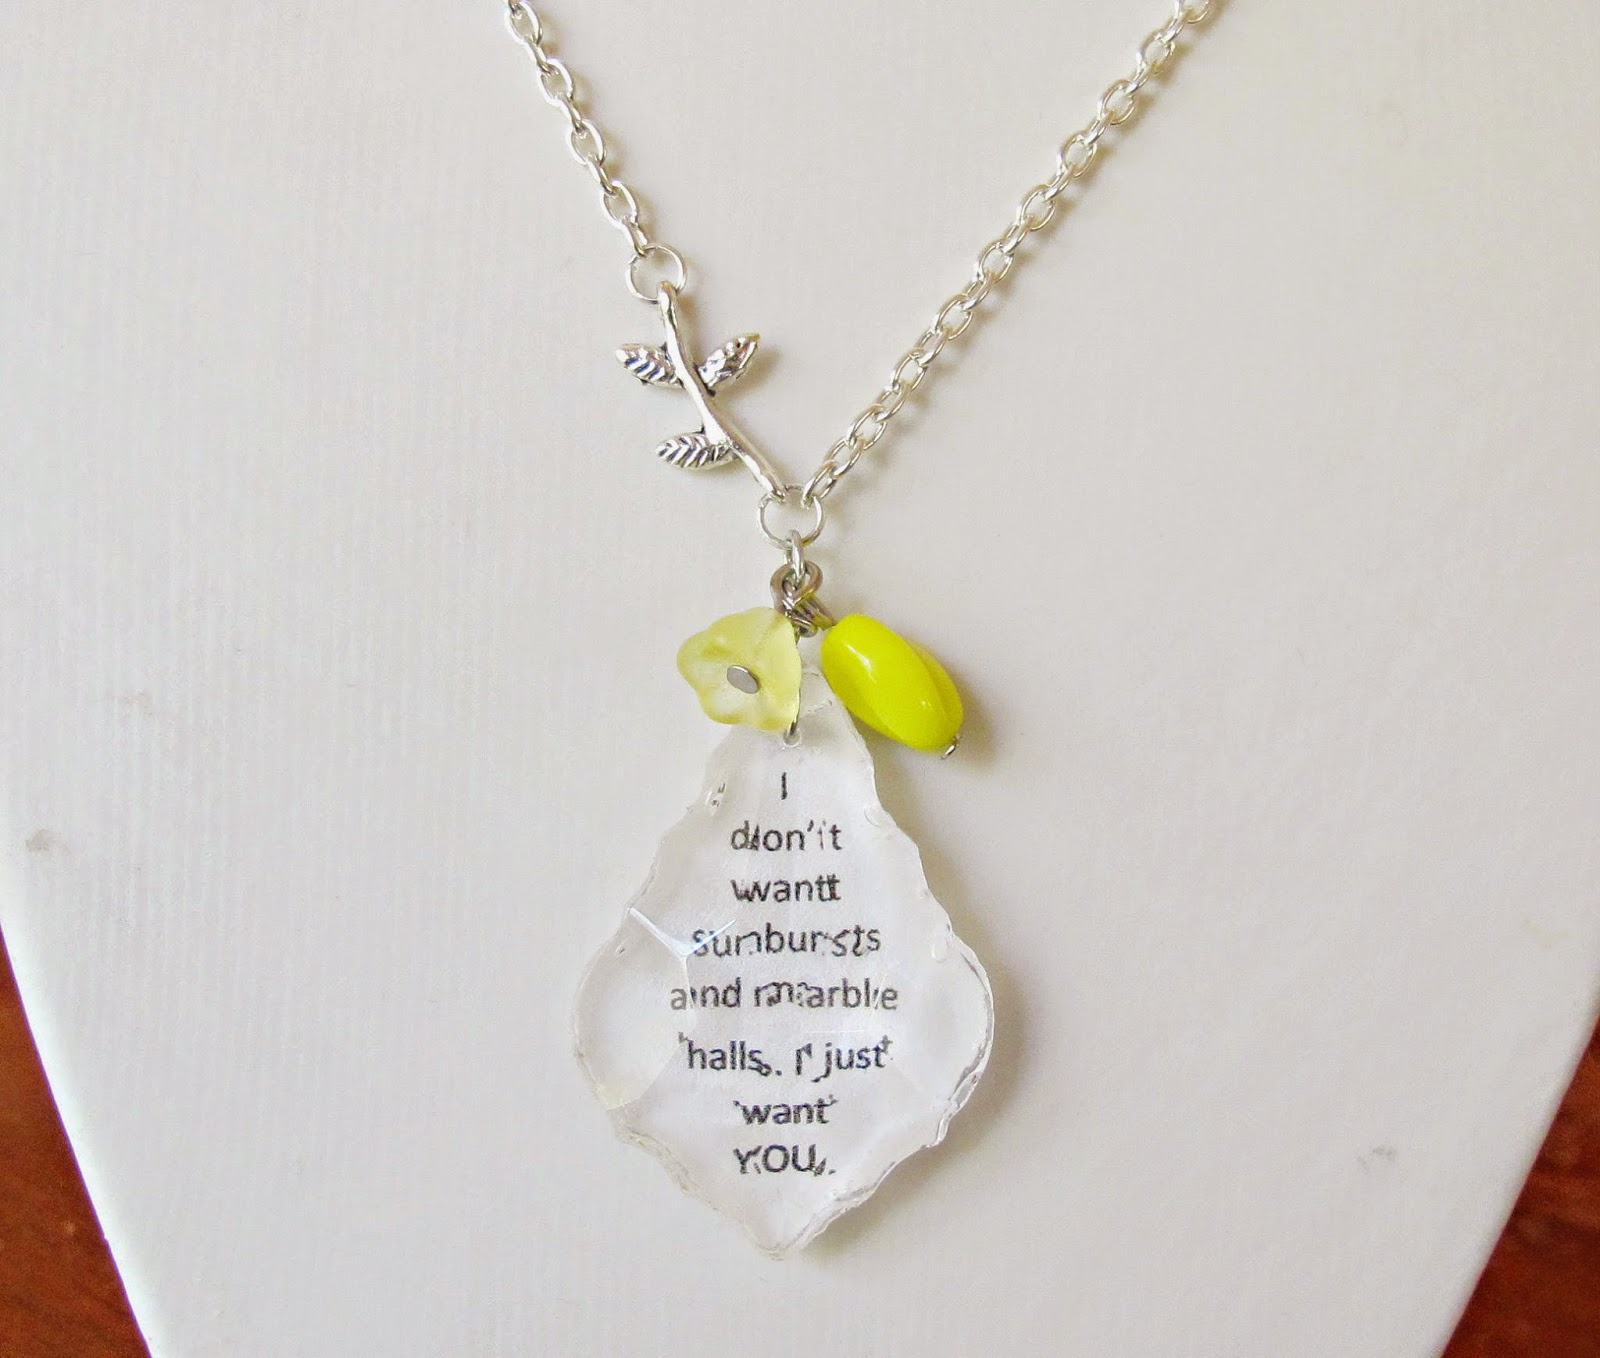 image anne of green gables anne of the island quote chandelier pendant necklace i don't want sunbursts and marble halls i just want you yellow sunshine summer silver plated two cheeky monkeys necklace baroque cut pendant